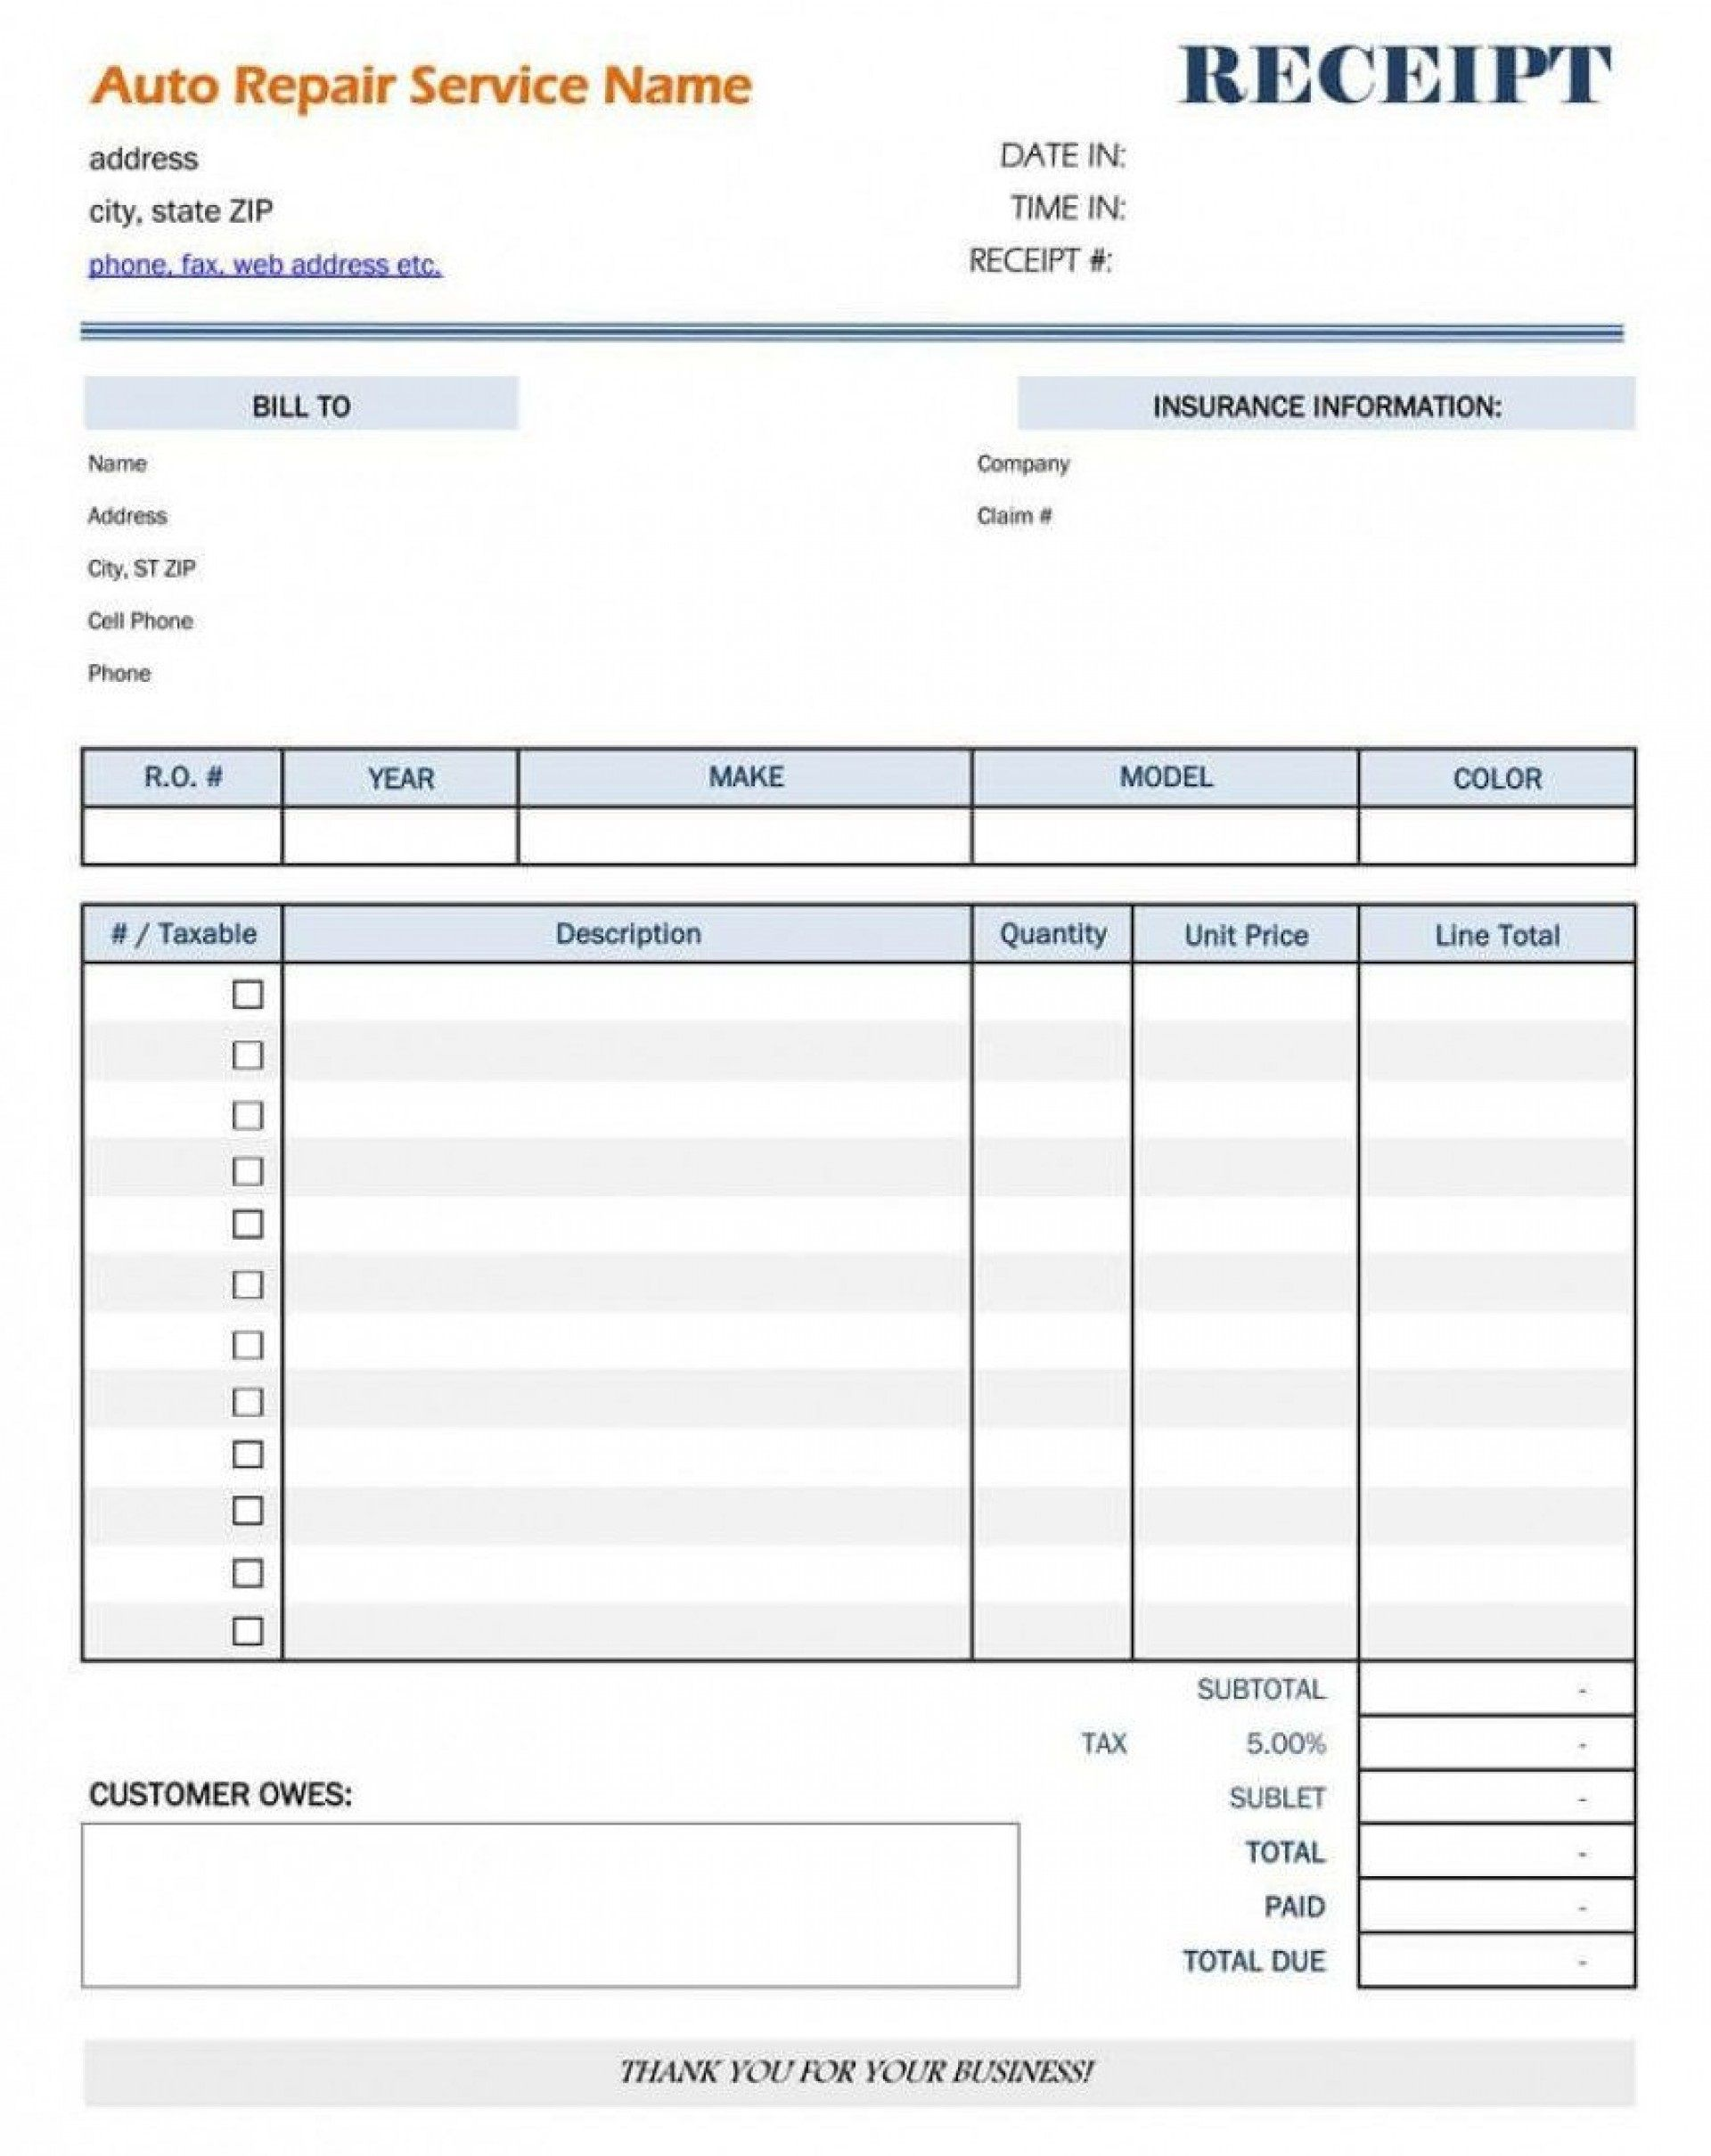 009 Stunning Auto Repair Invoice Template Excel Highest Quality Full